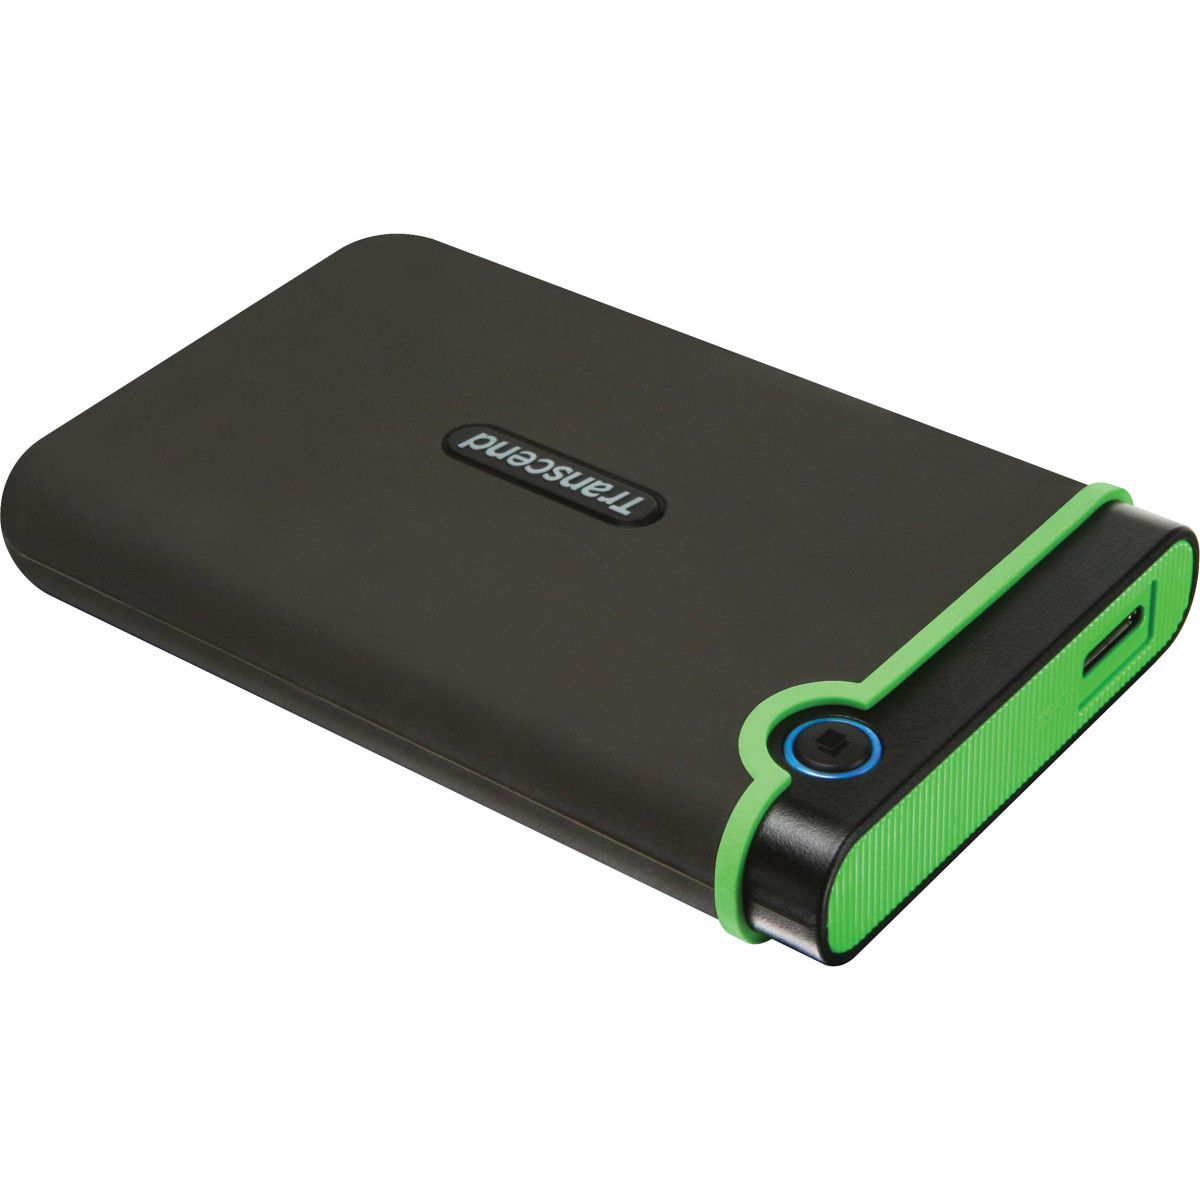 Ideal Gifts: Transcend's 1TB shockproof hard drive will save your digital life